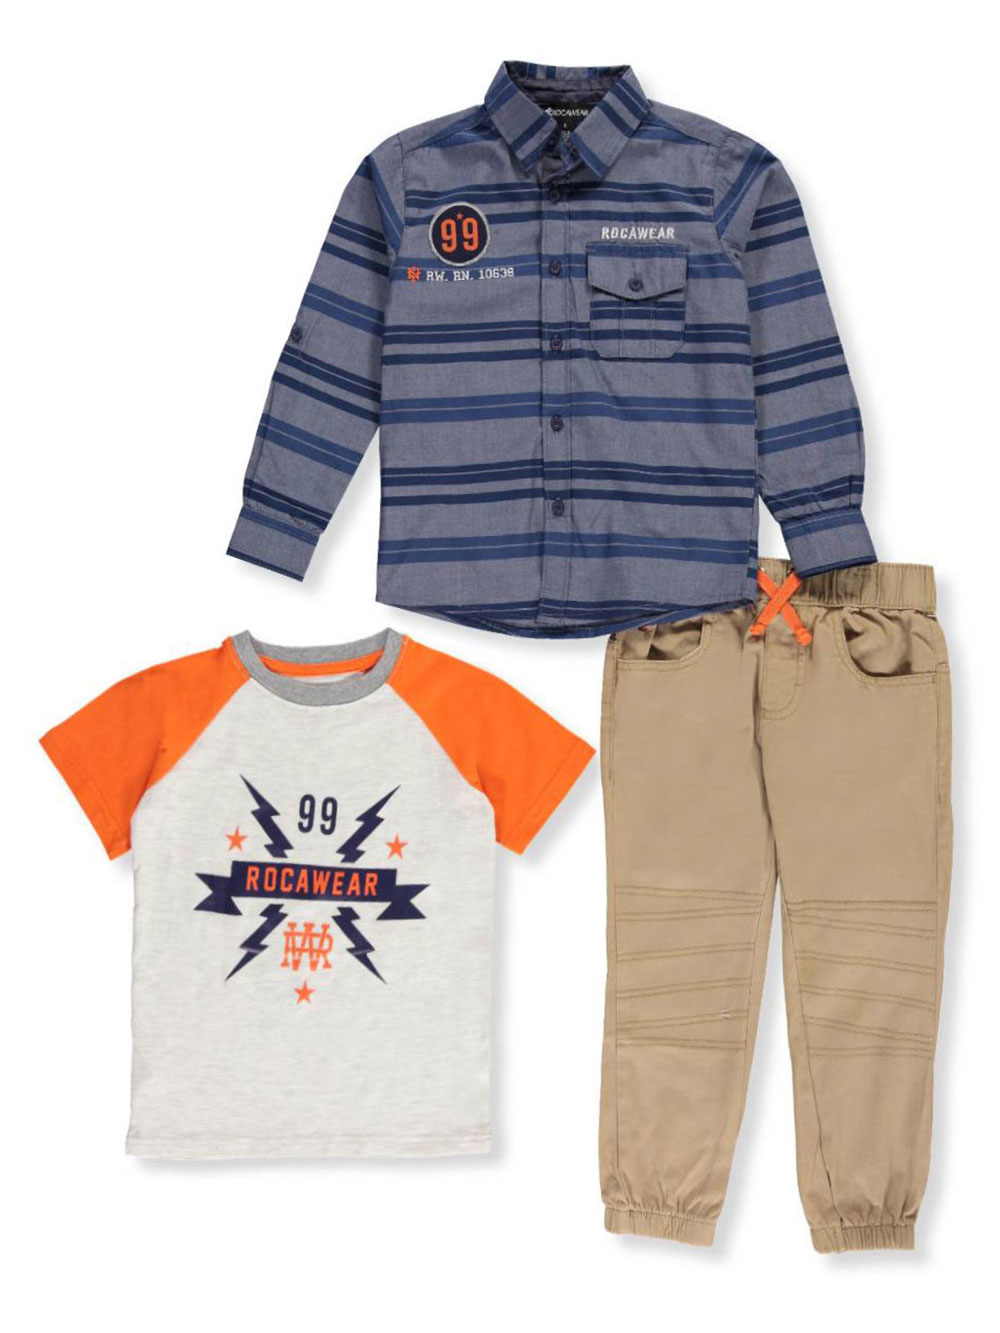 Rocawear Baby Boys 3 Piece Outfit